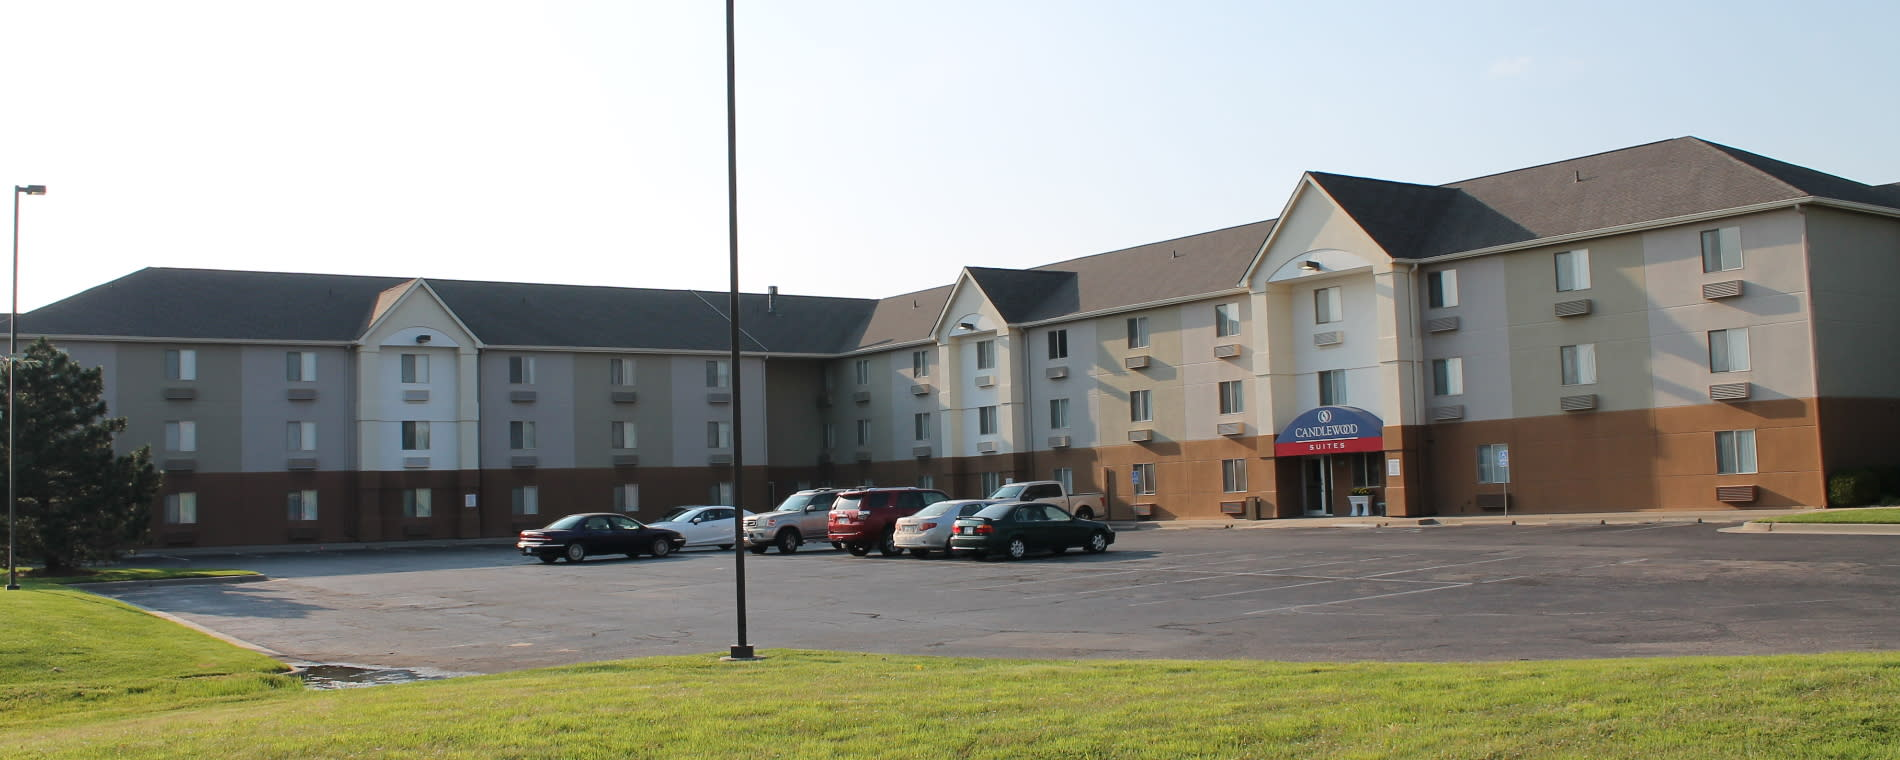 Candlewood Suites North Wichita